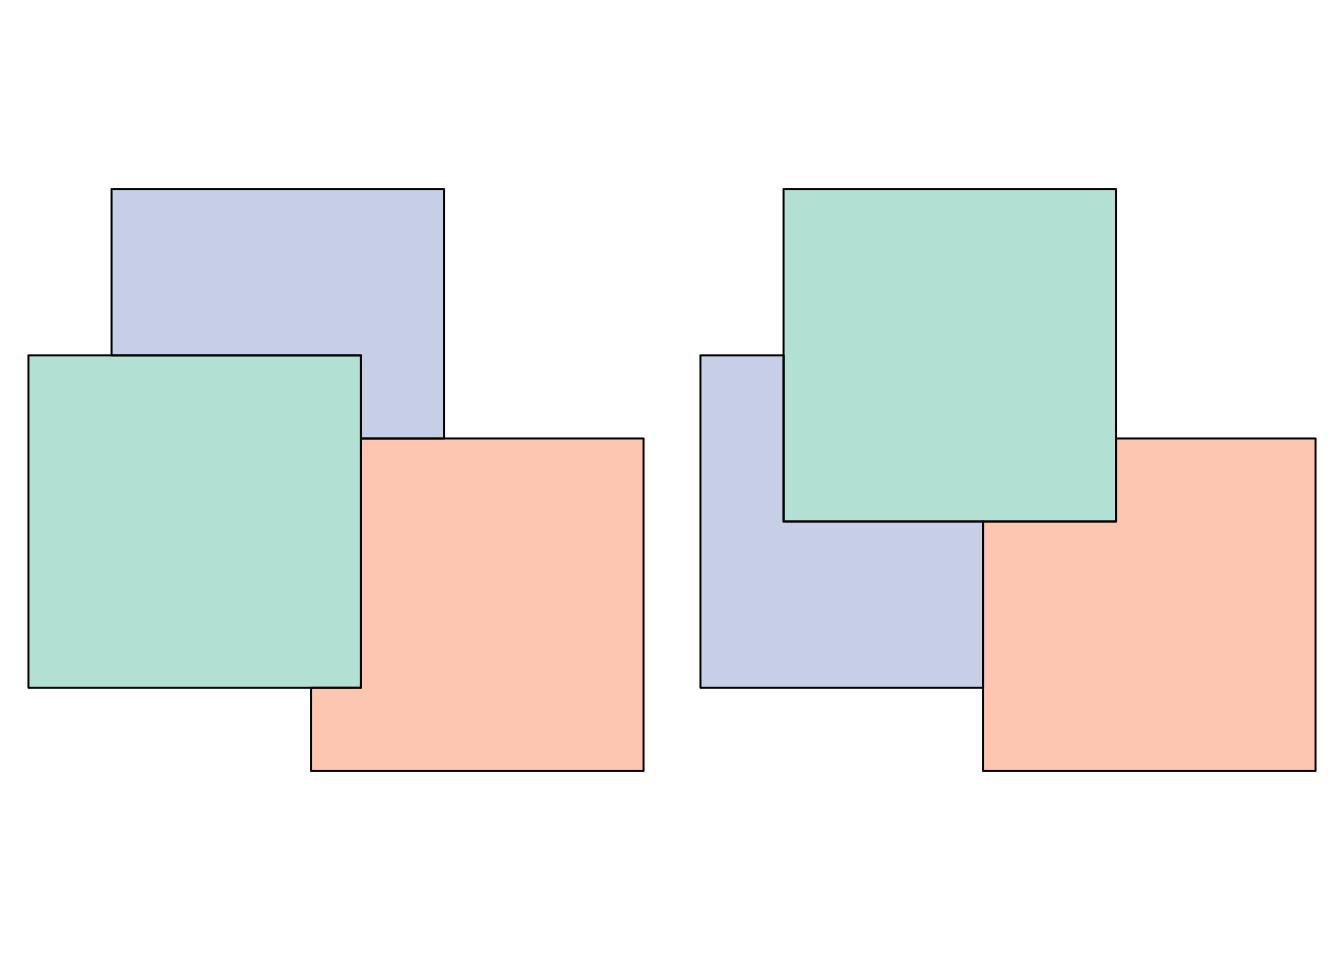 difference between subsequent boxes, left: in original order; right: in reverse order